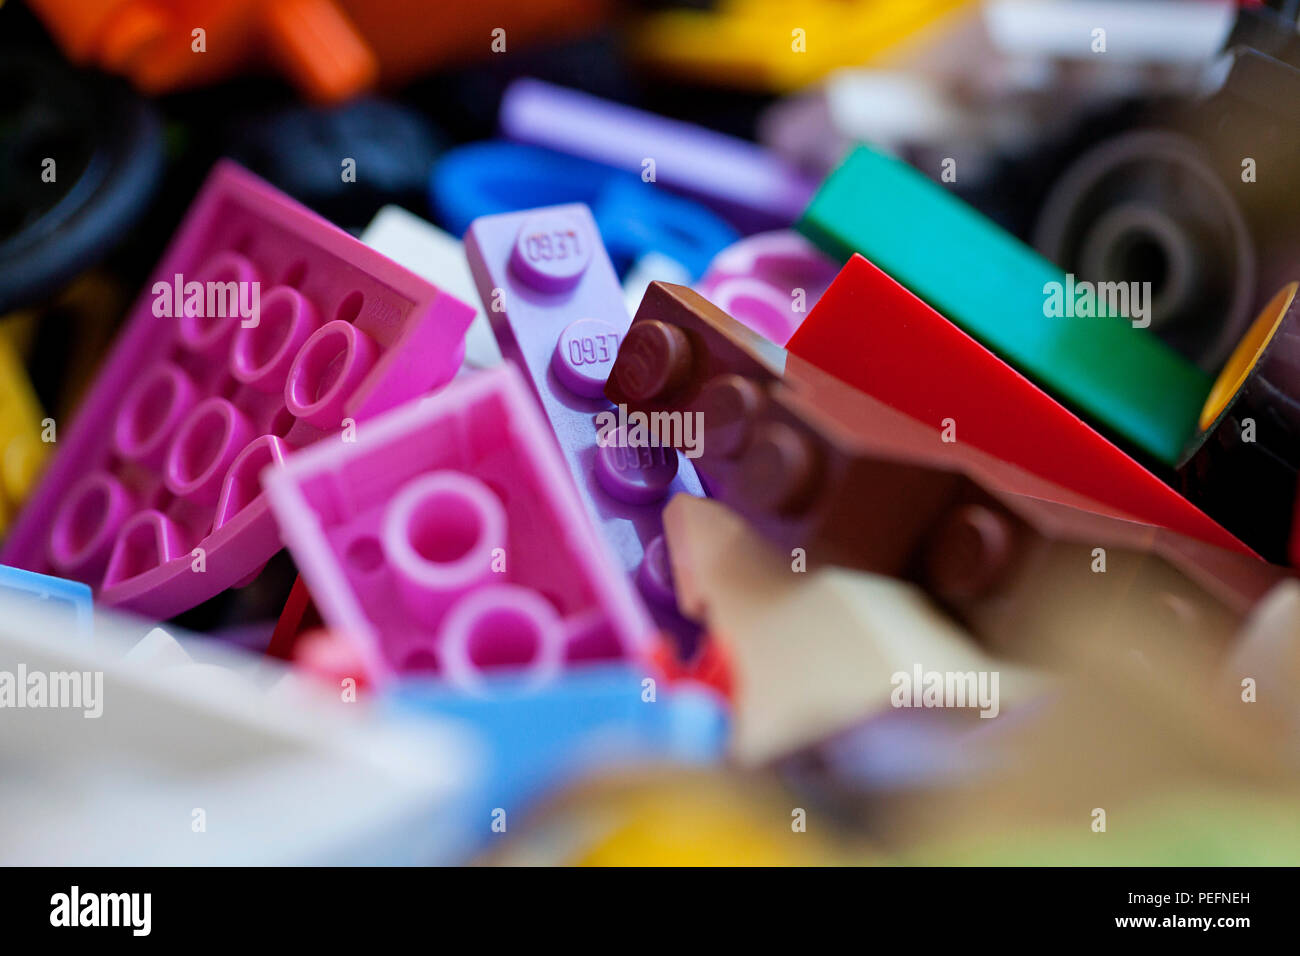 Close up of plastic lego pieces Stock Photo